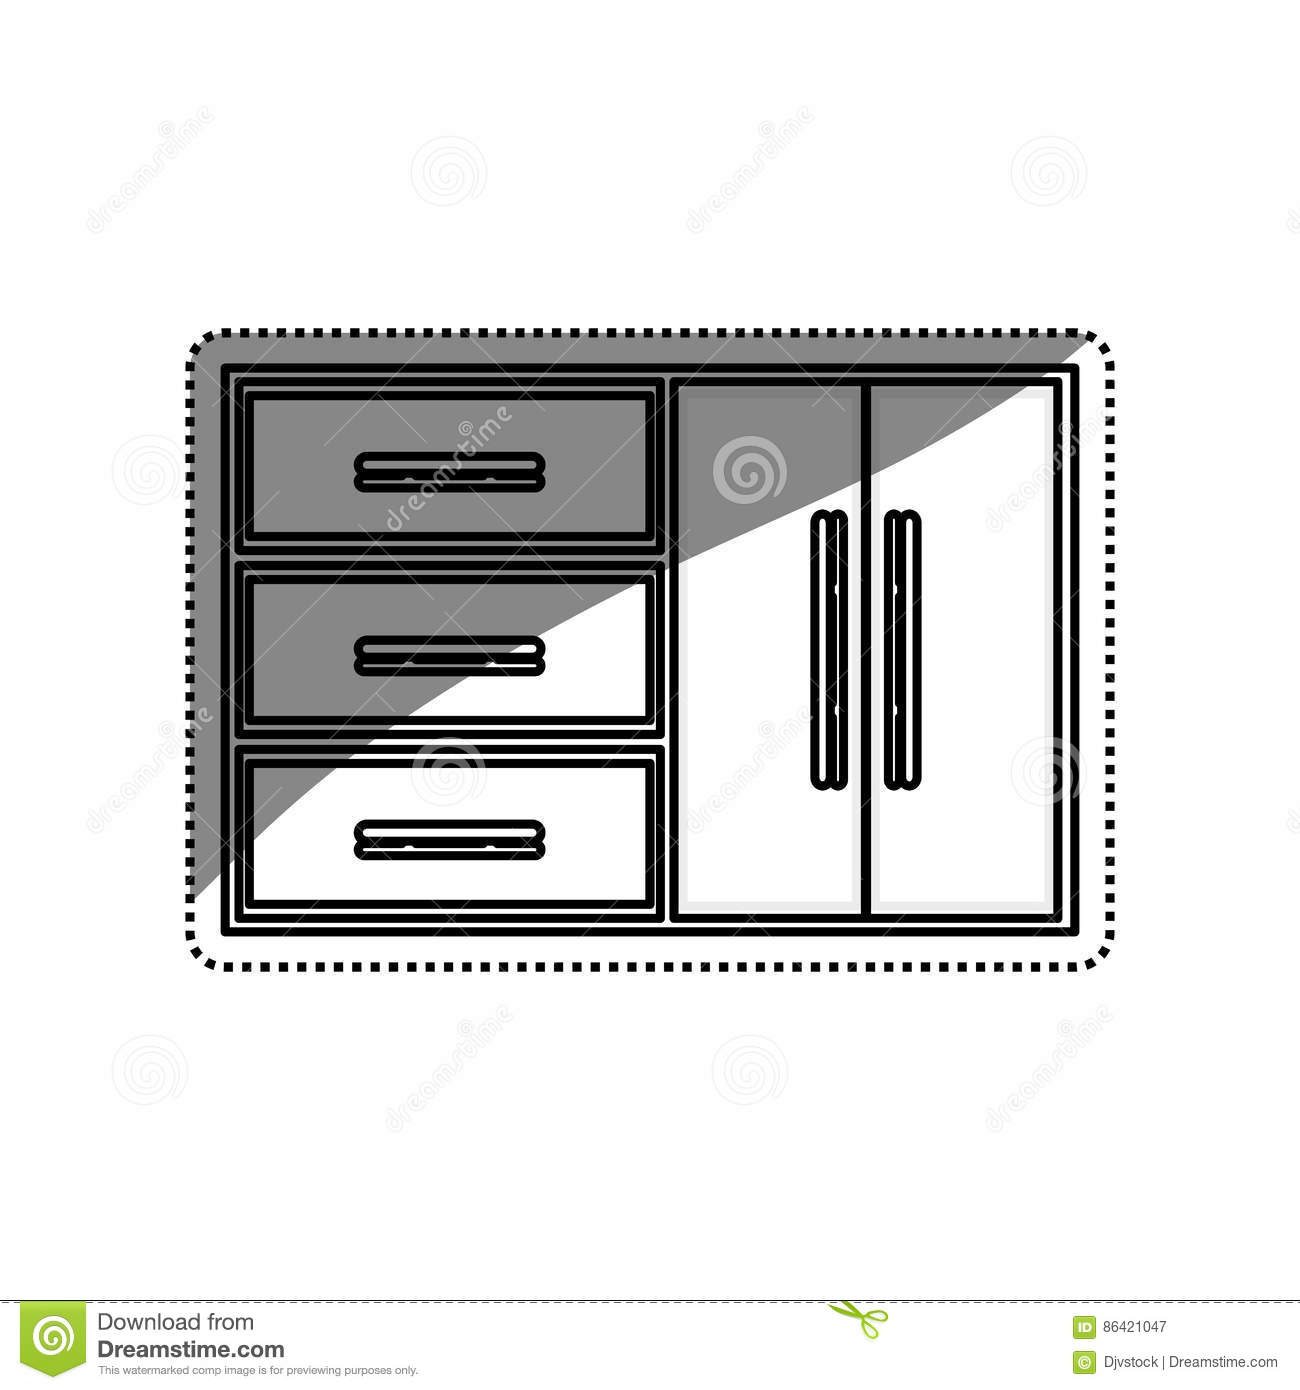 Kitchen Cabinet Design Stock Illustration. Image Of Tile